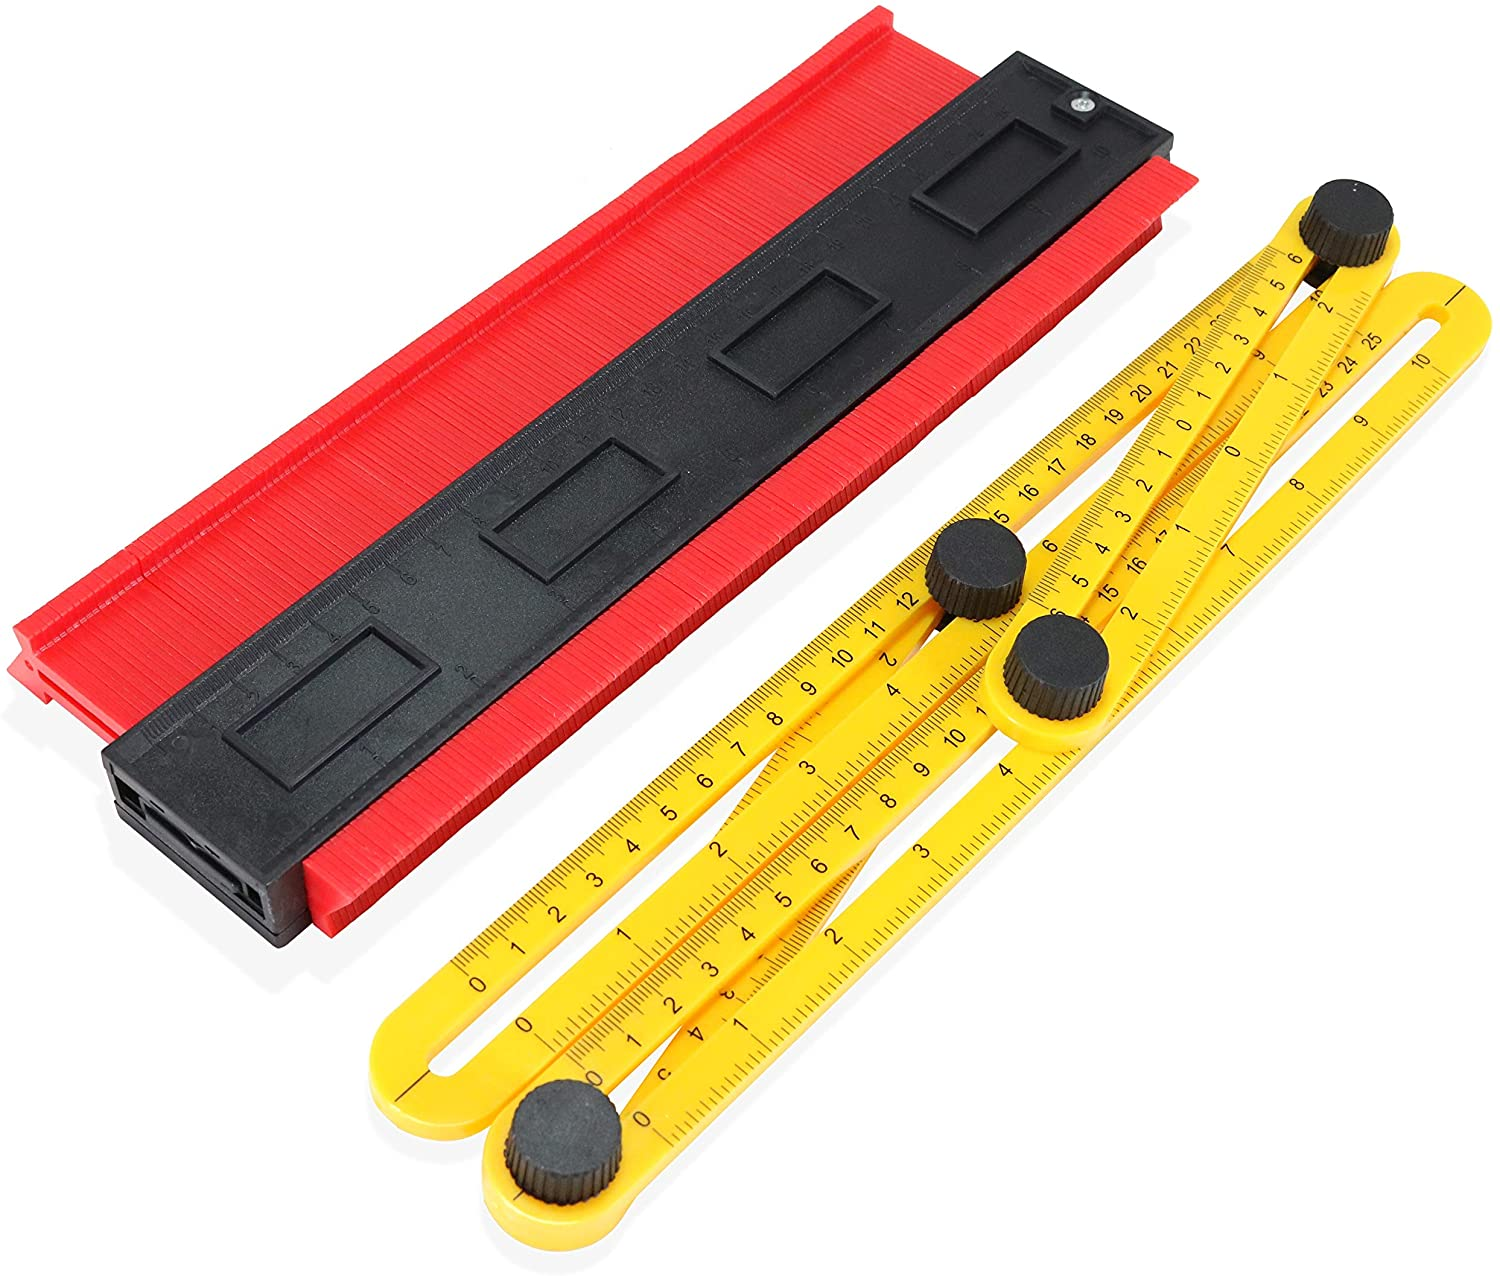 Gyamax 10 Inch Plastic Profile Gauge Contour Comb Duplicator Complete with Multi-function Adjustable Folding Measuring Multi Angle Ruler red